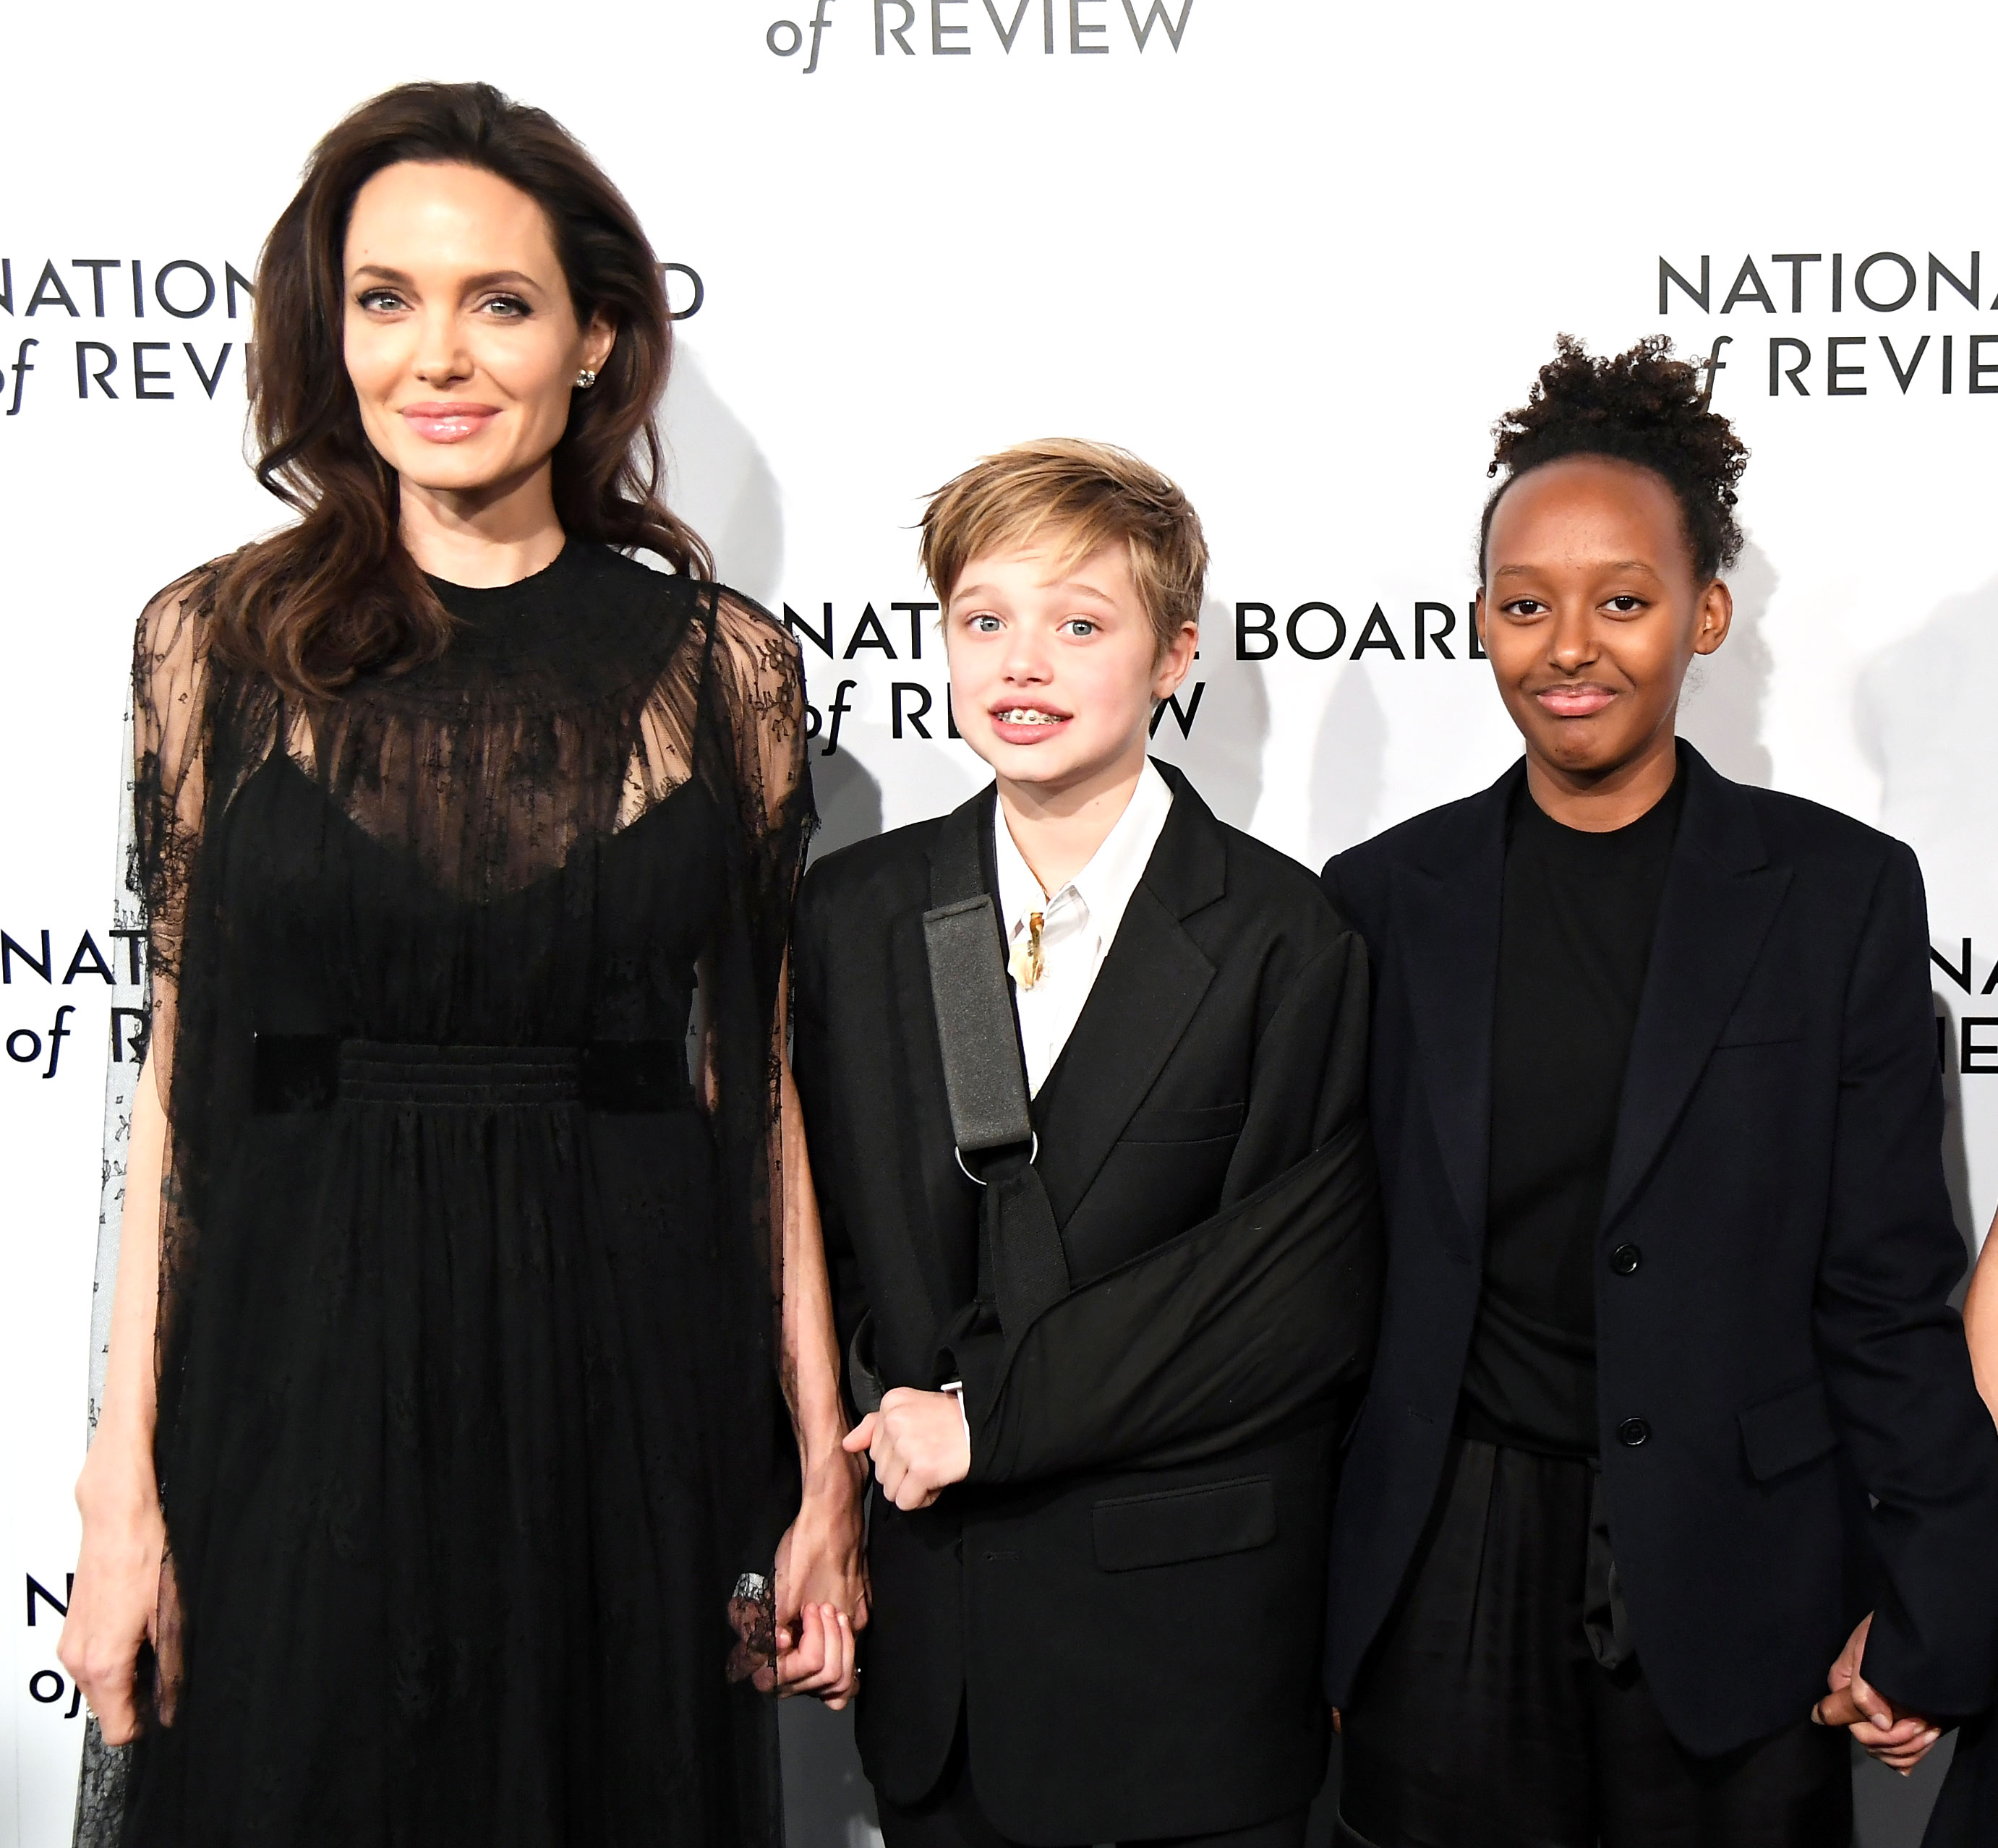 Angelina Jolie - Jolie attended the National Board of Review Awards Gala with two of her babes, Shiloh and Zahara. The trio matched in all black ensembles at the event which took place in NYC on January 8, 2018.